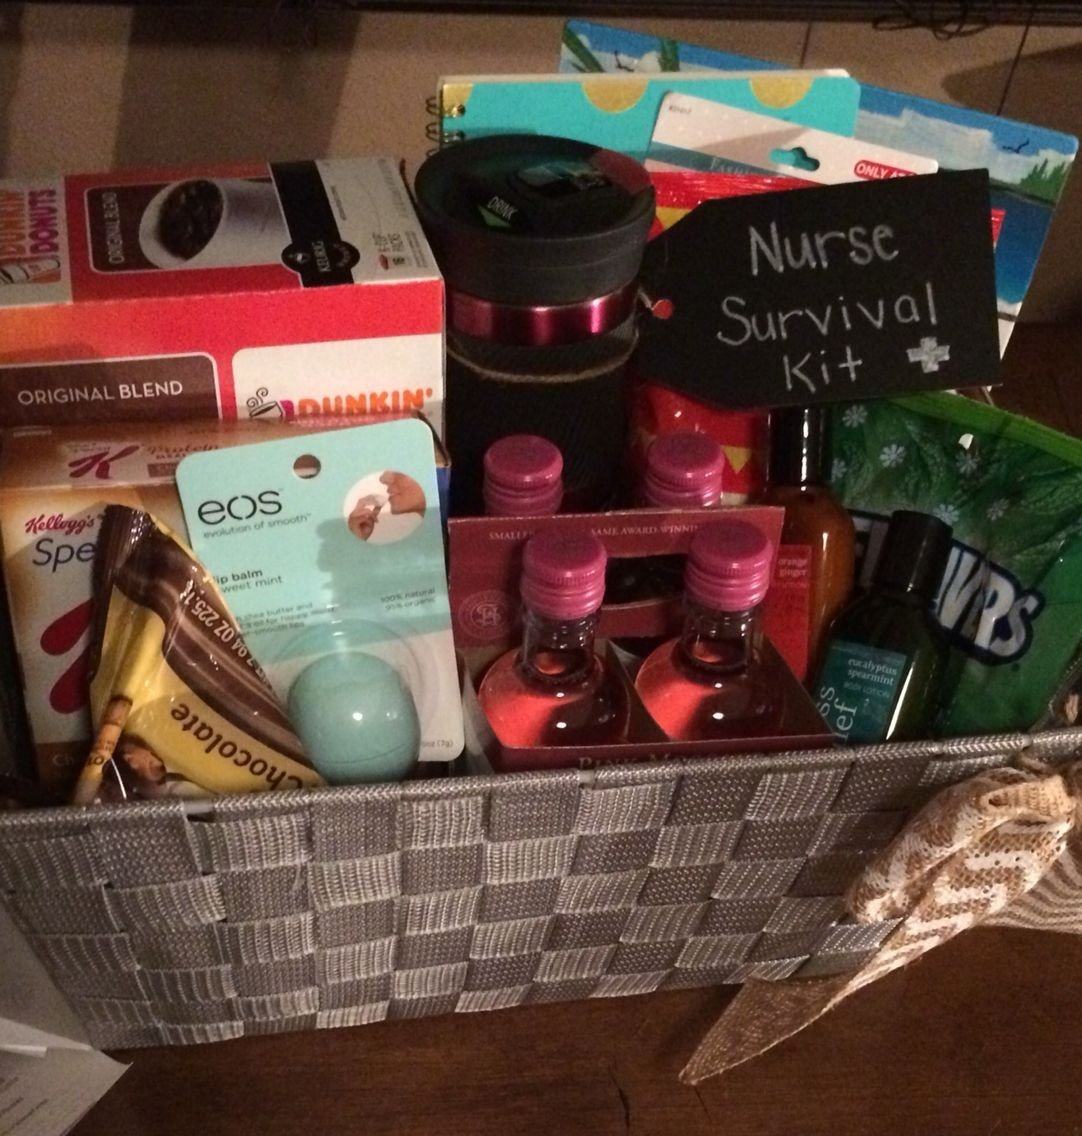 10 Awesome Gift Ideas For Nursing Students nurse survival kit graduation gift a work related stuff 2020